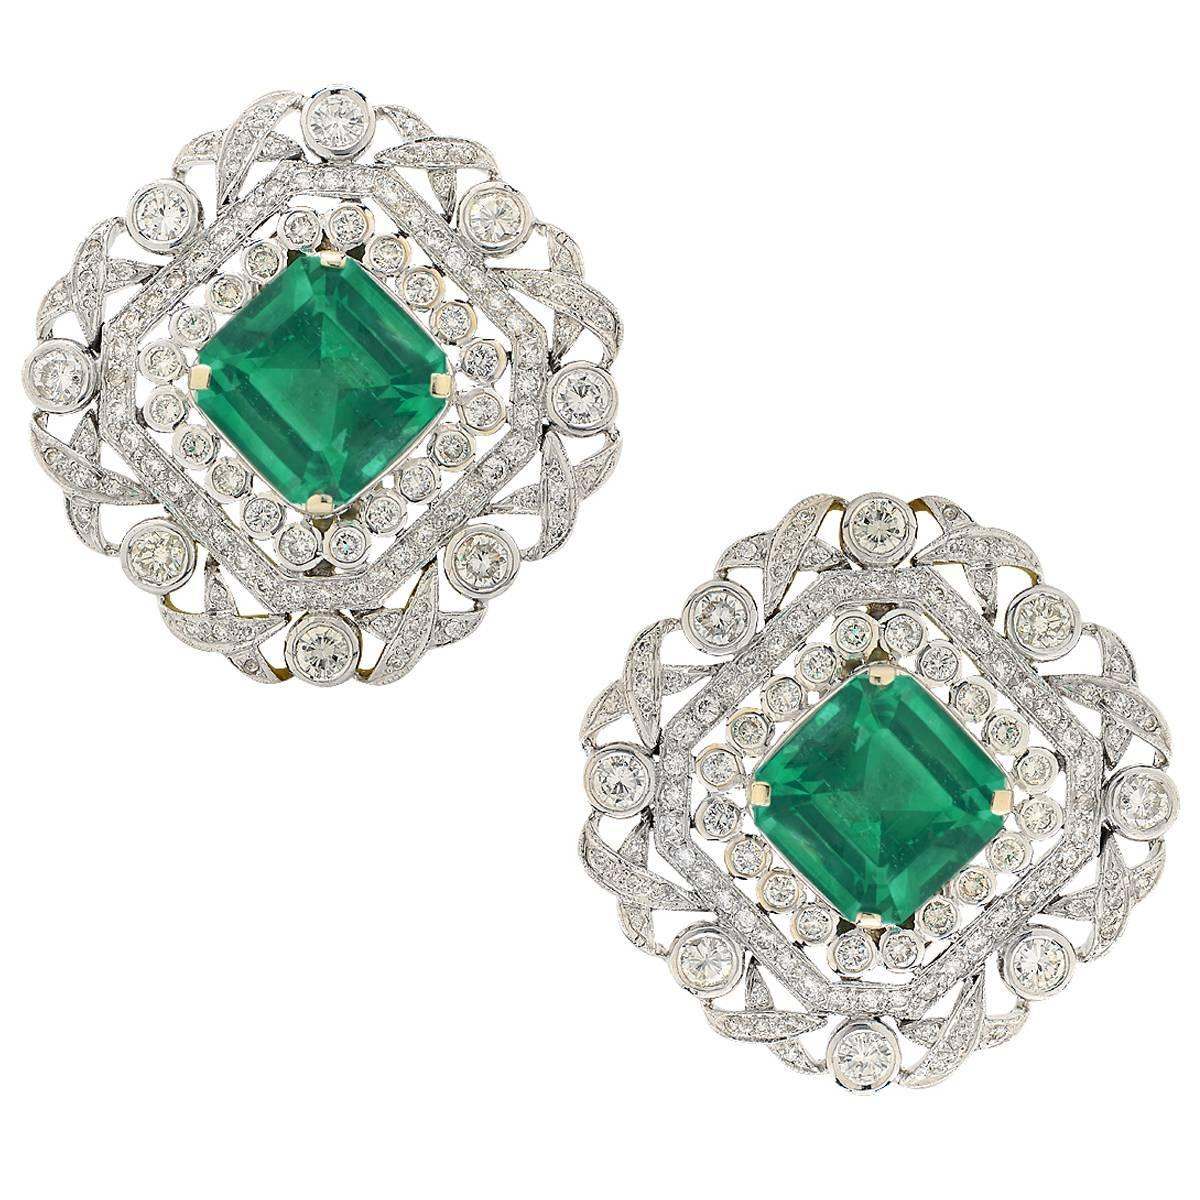 Emerald Diamond gold Earrings For Sale at 1stdibs